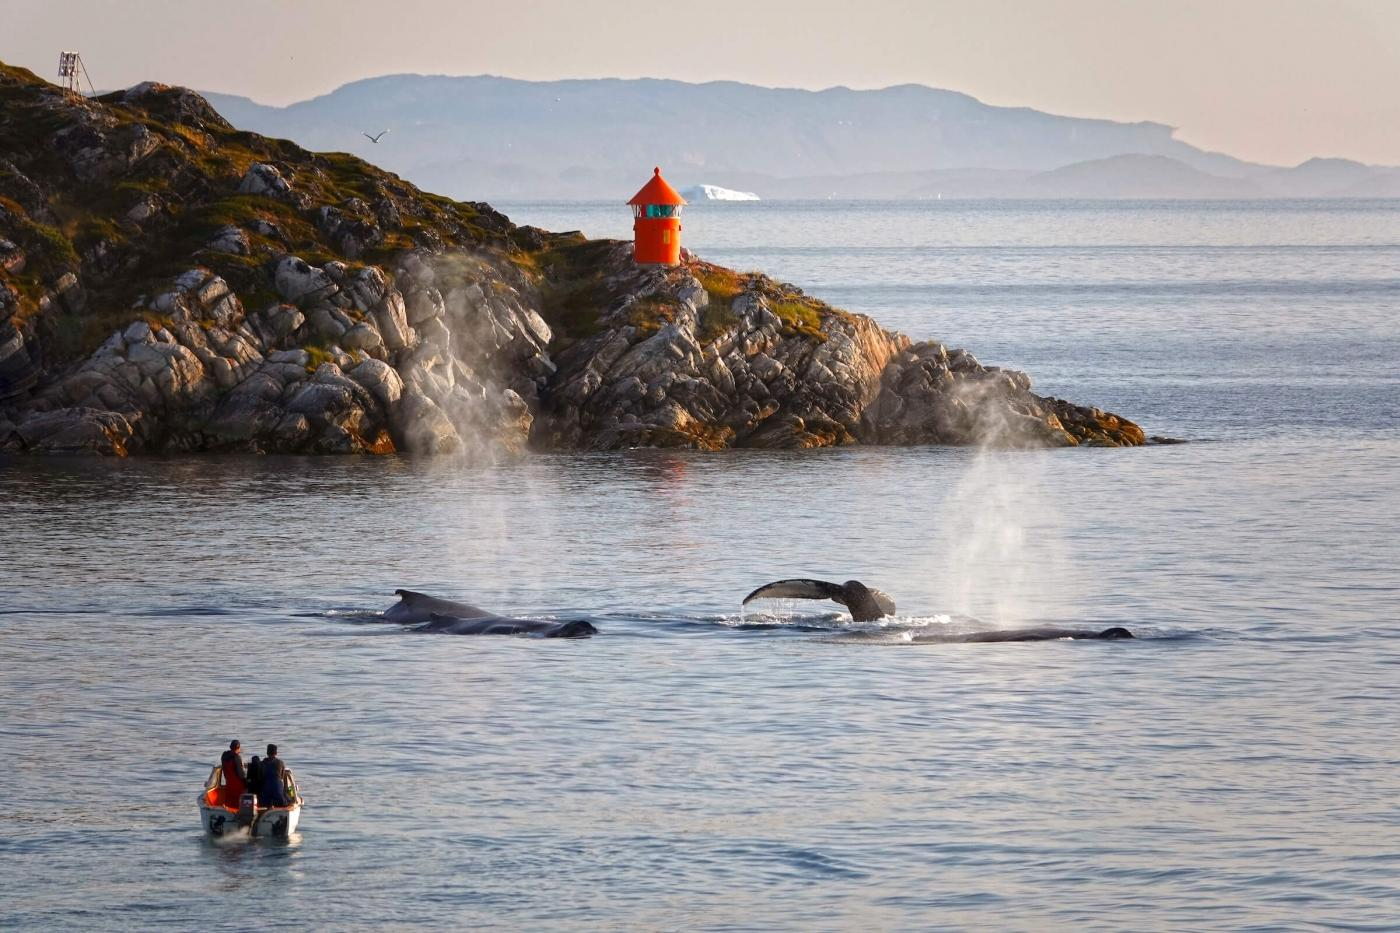 People observing three whale from their boat in Disko Bay. Photo by Espen Andersen, Visit Greenland